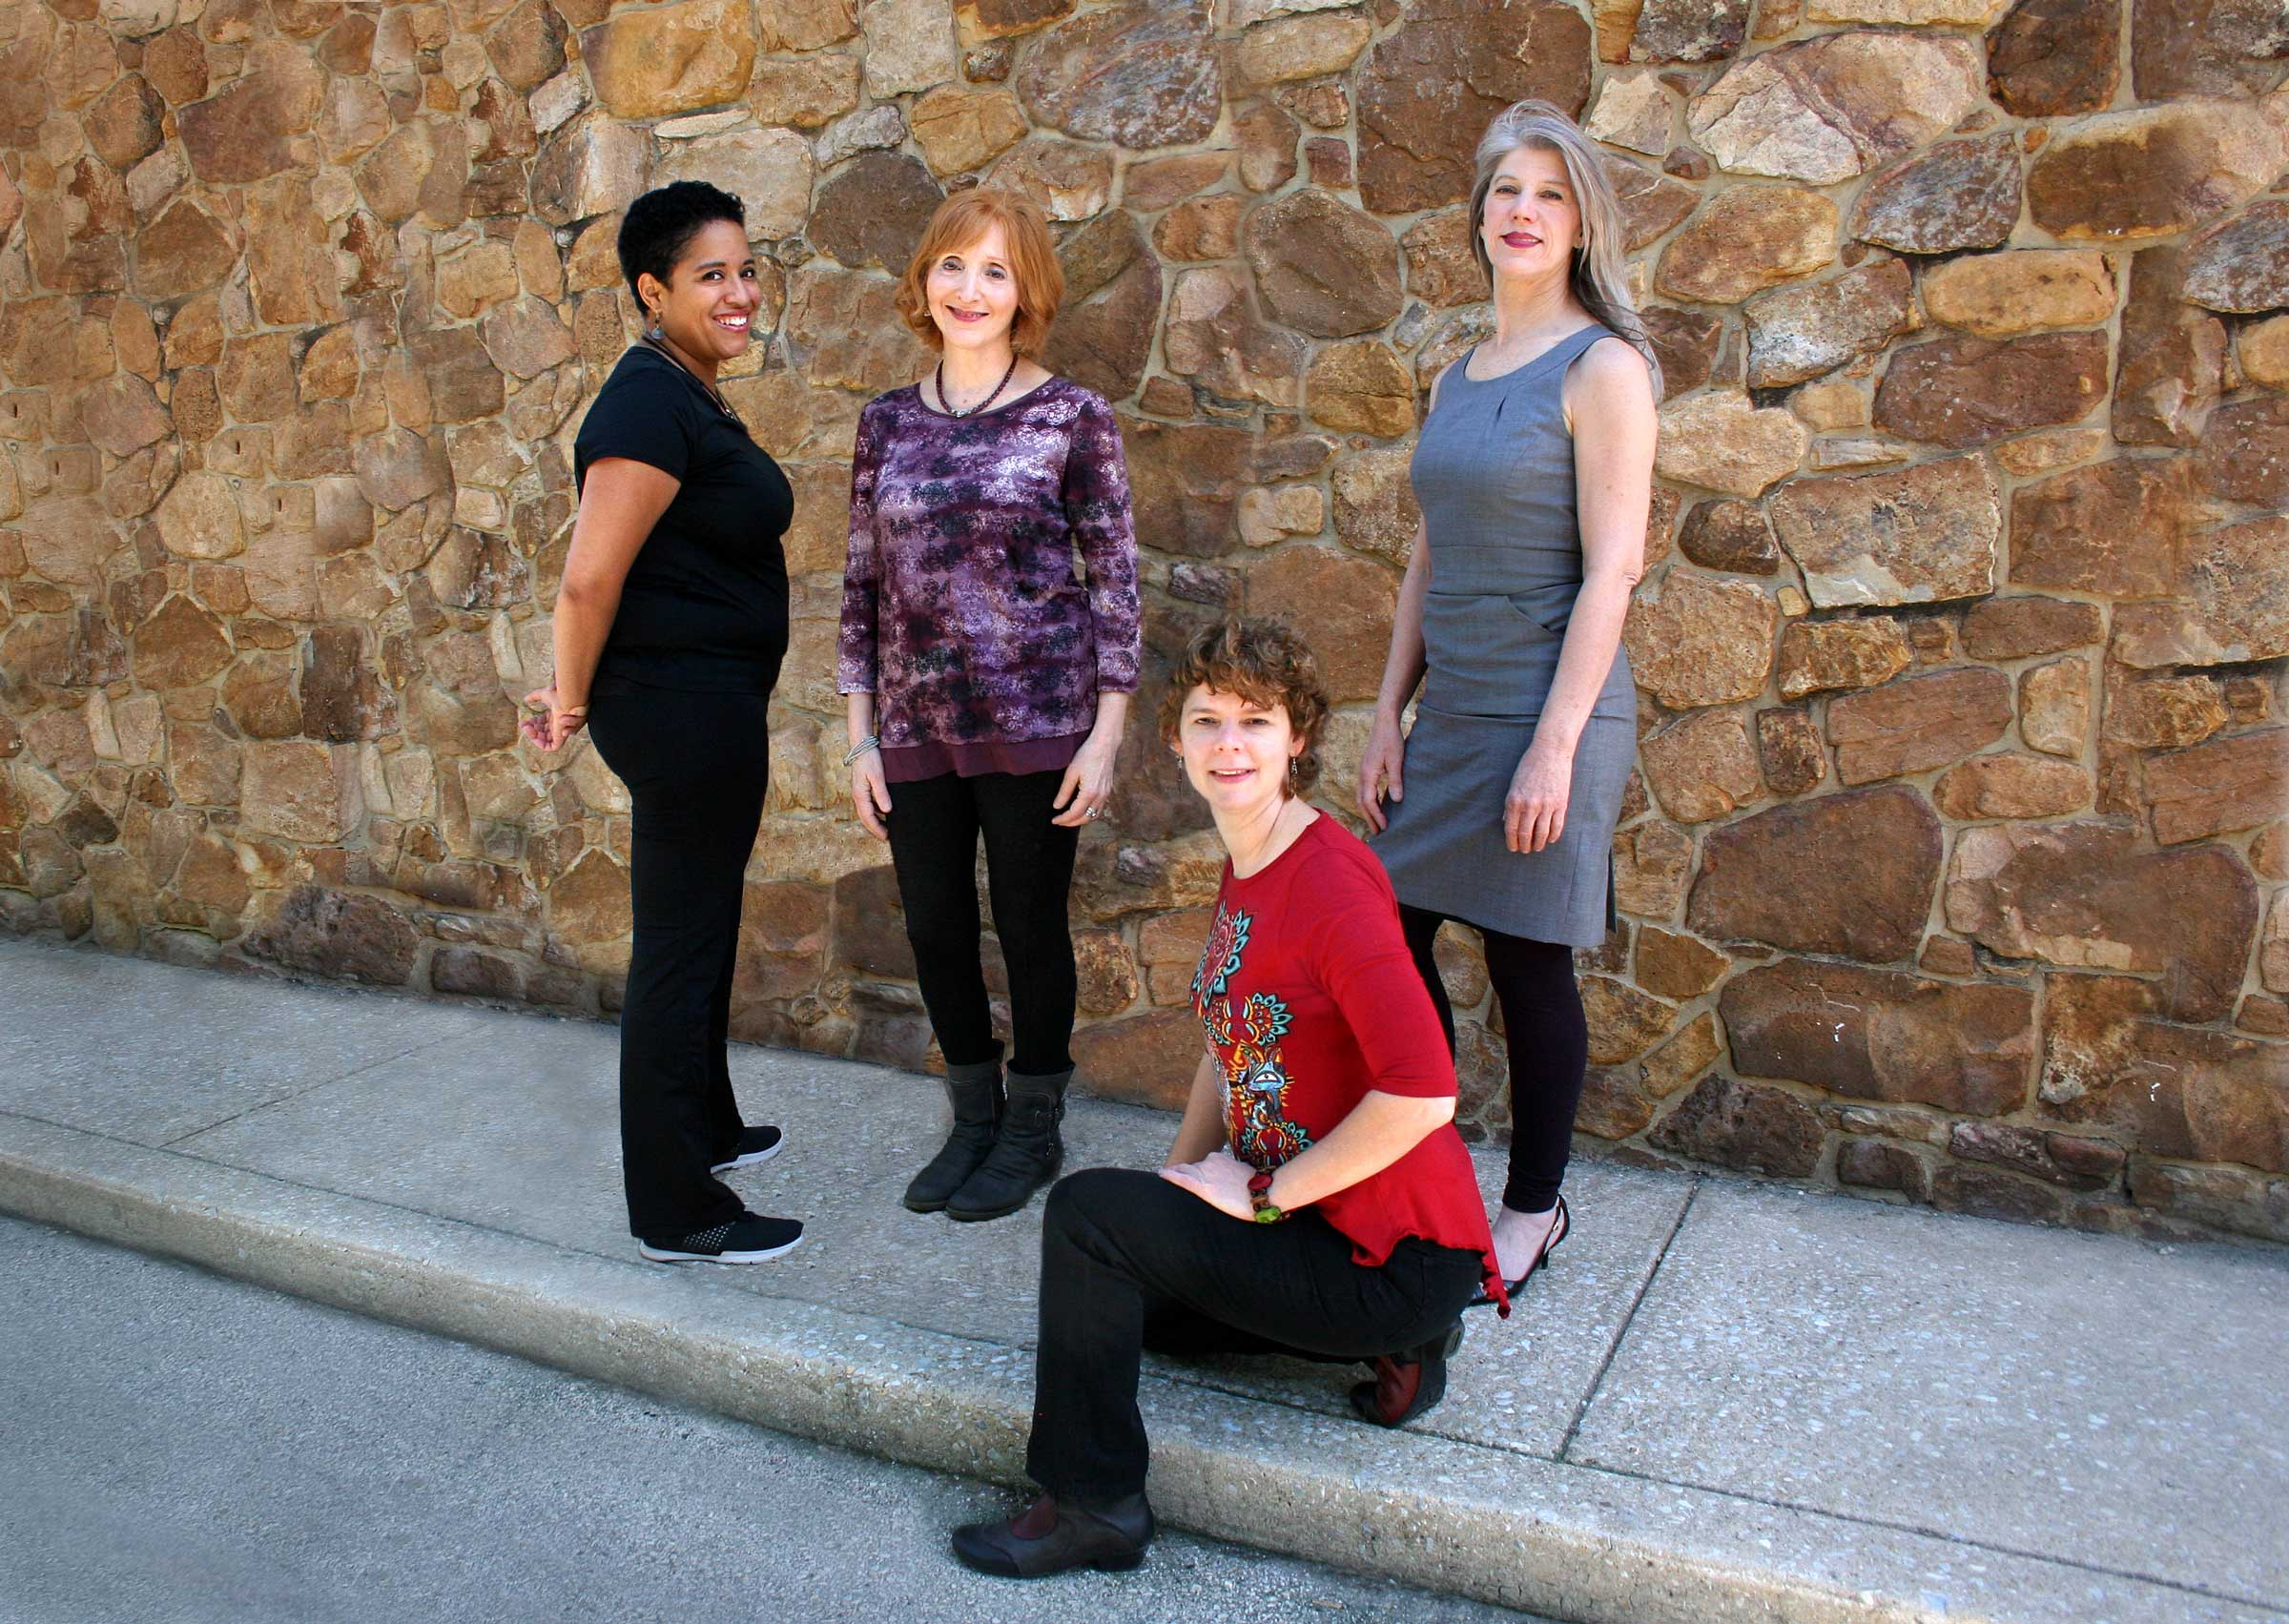 Bodycentric Healing Arts Staff